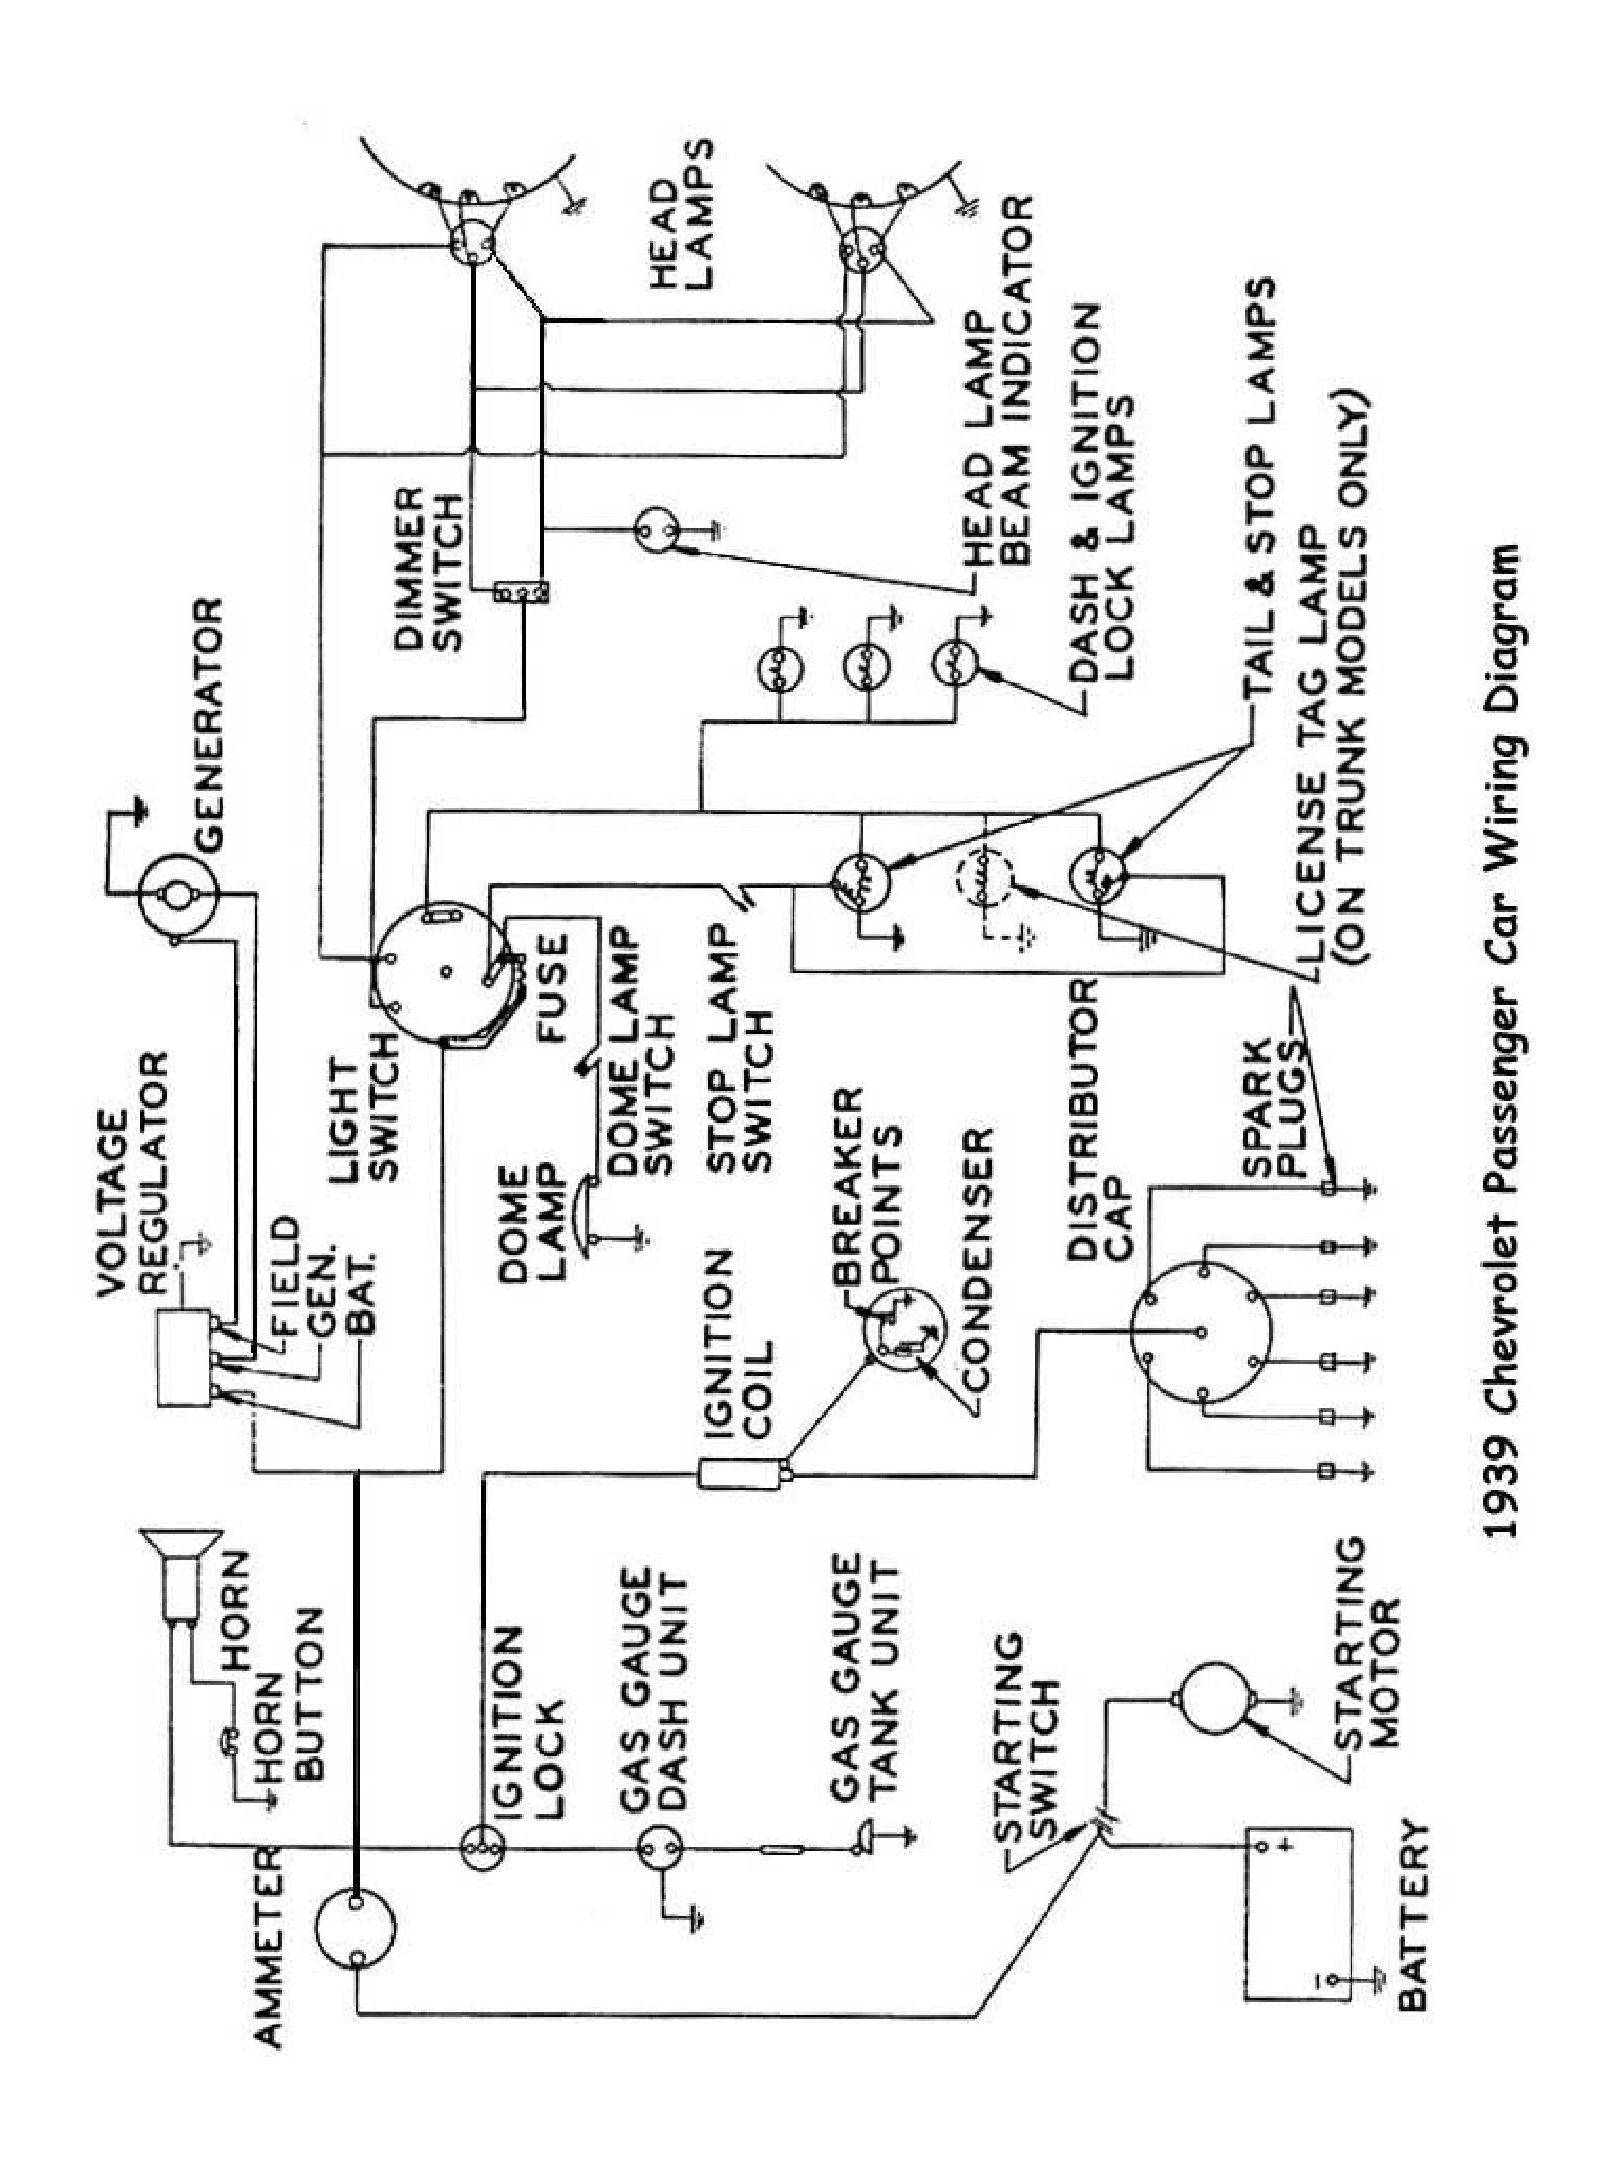 International 4900 Dt466e Starter Wire Diagram on 2000 International 4700 Wiring Diagram